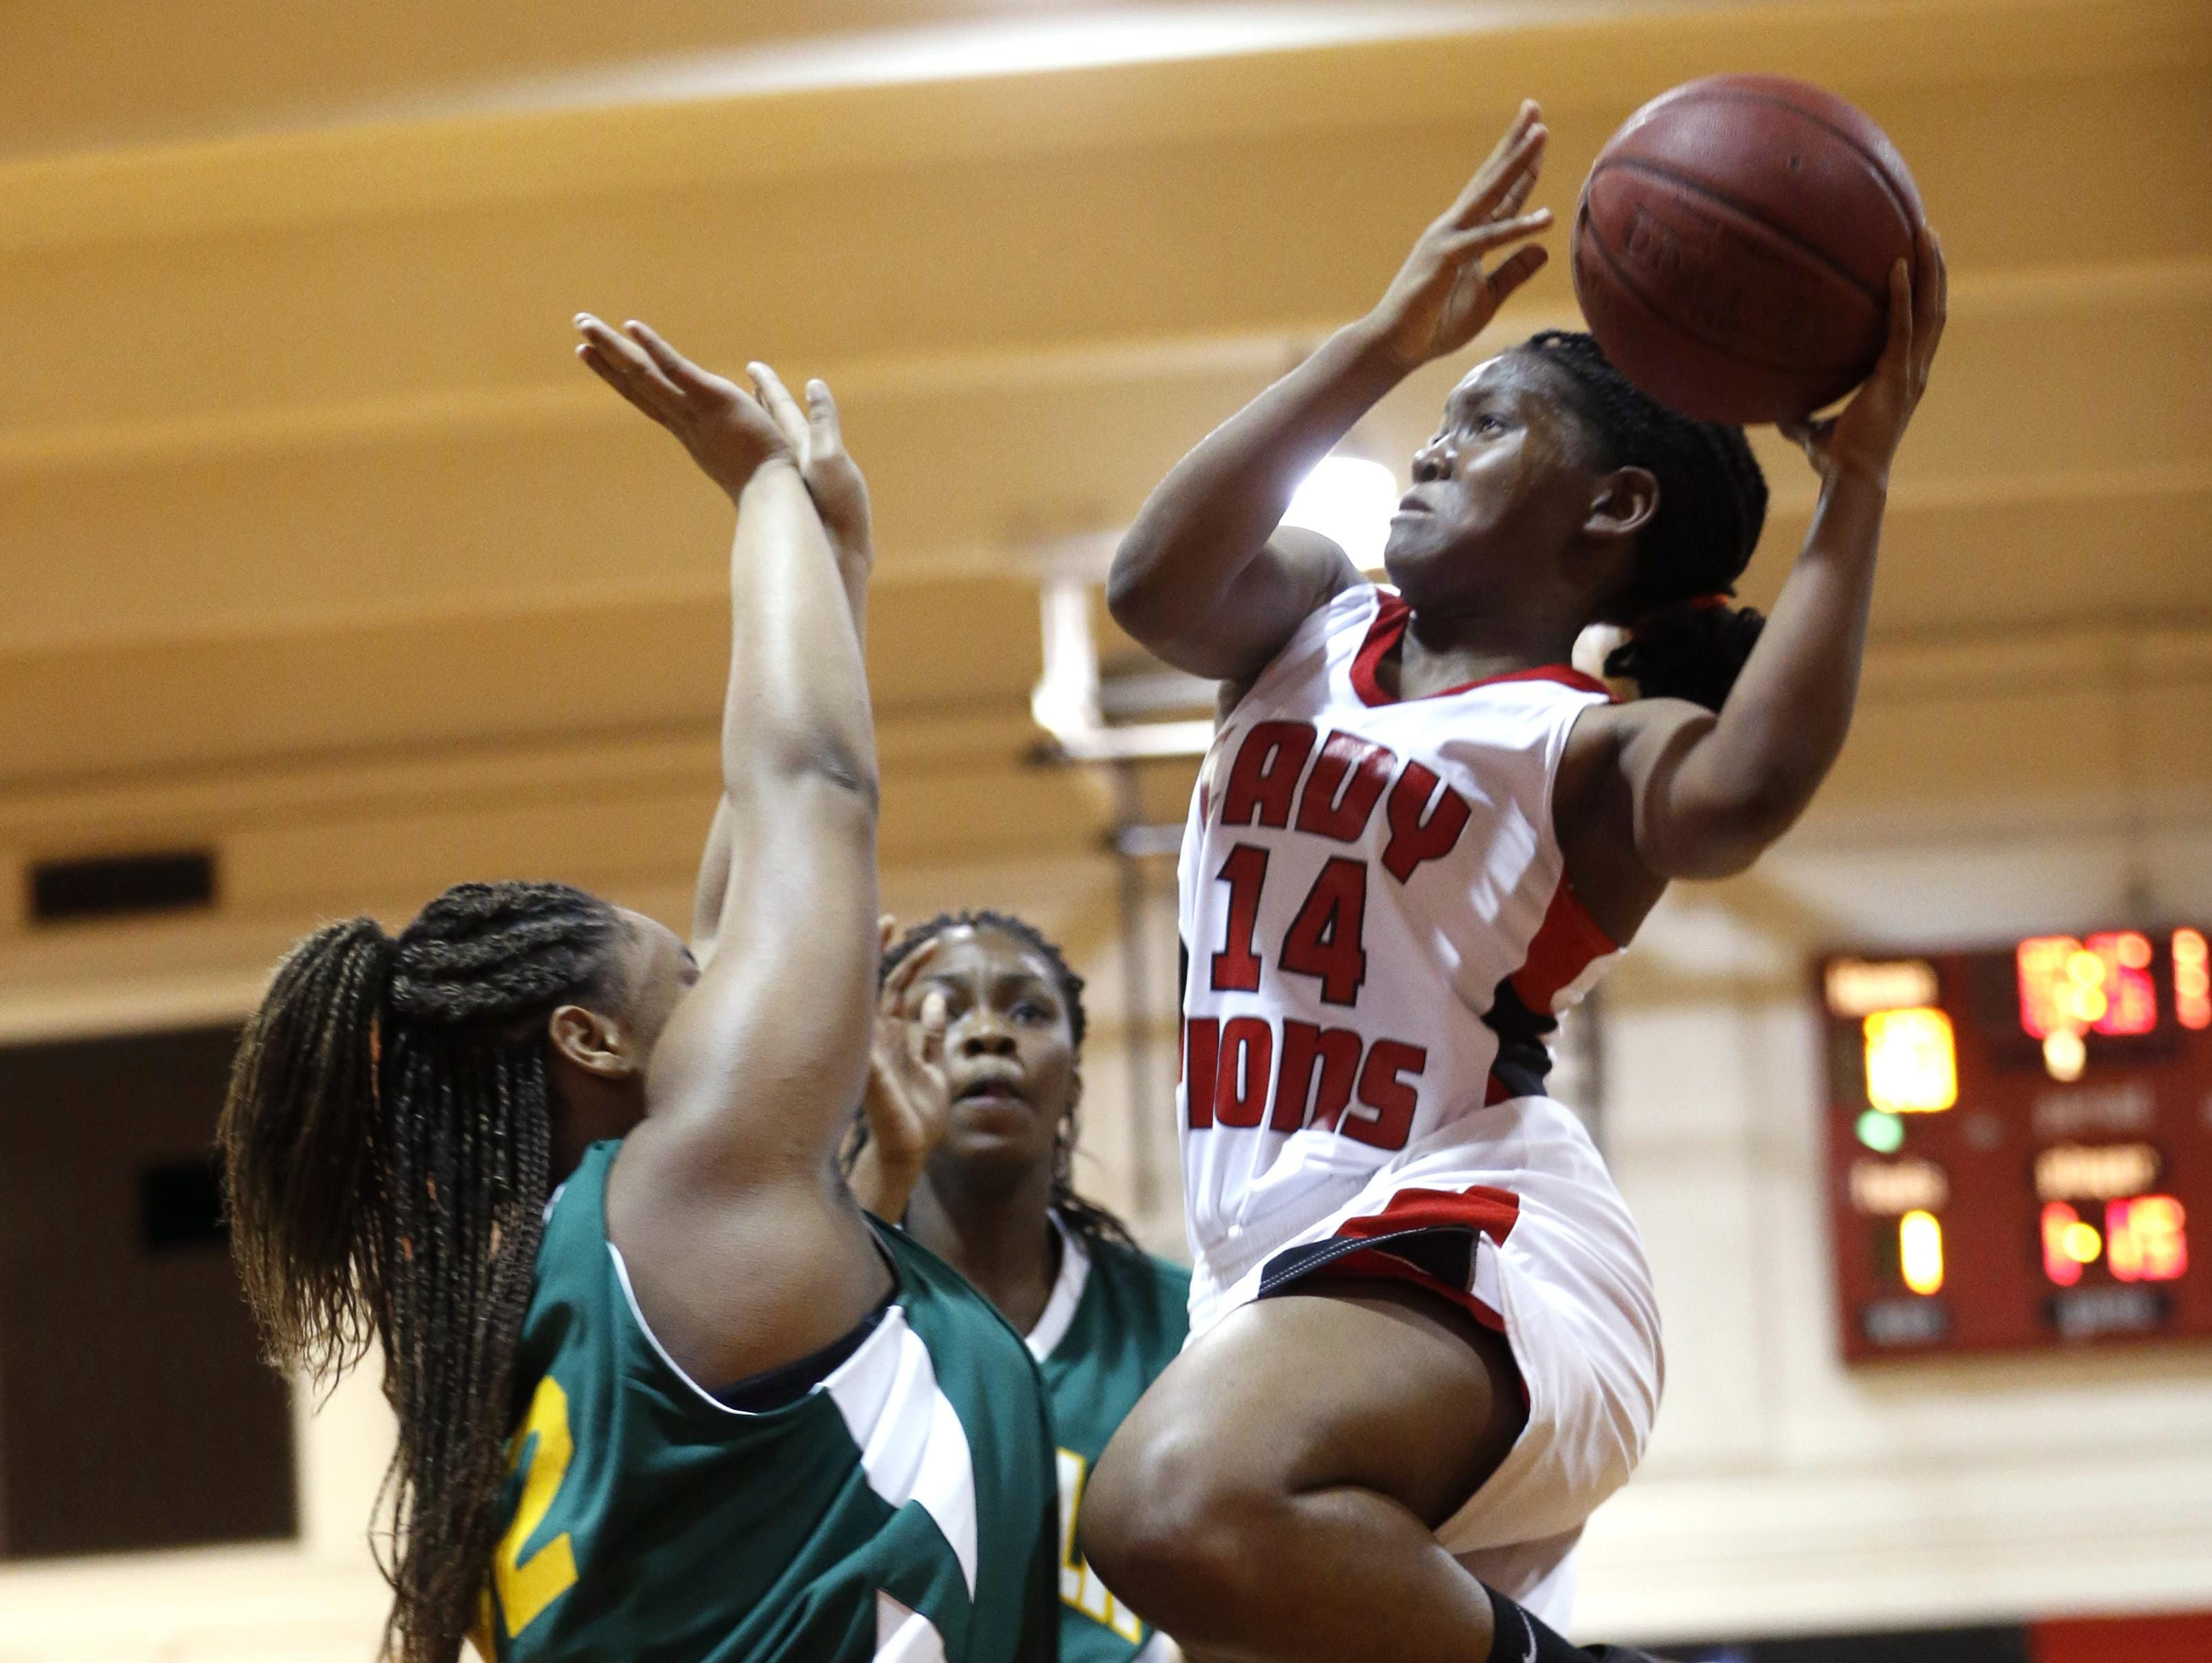 Leon sophomore Jala Williams should once again provide double-digit scoring for the Lions this season following a second-team All-Big Bend year as a freshman.